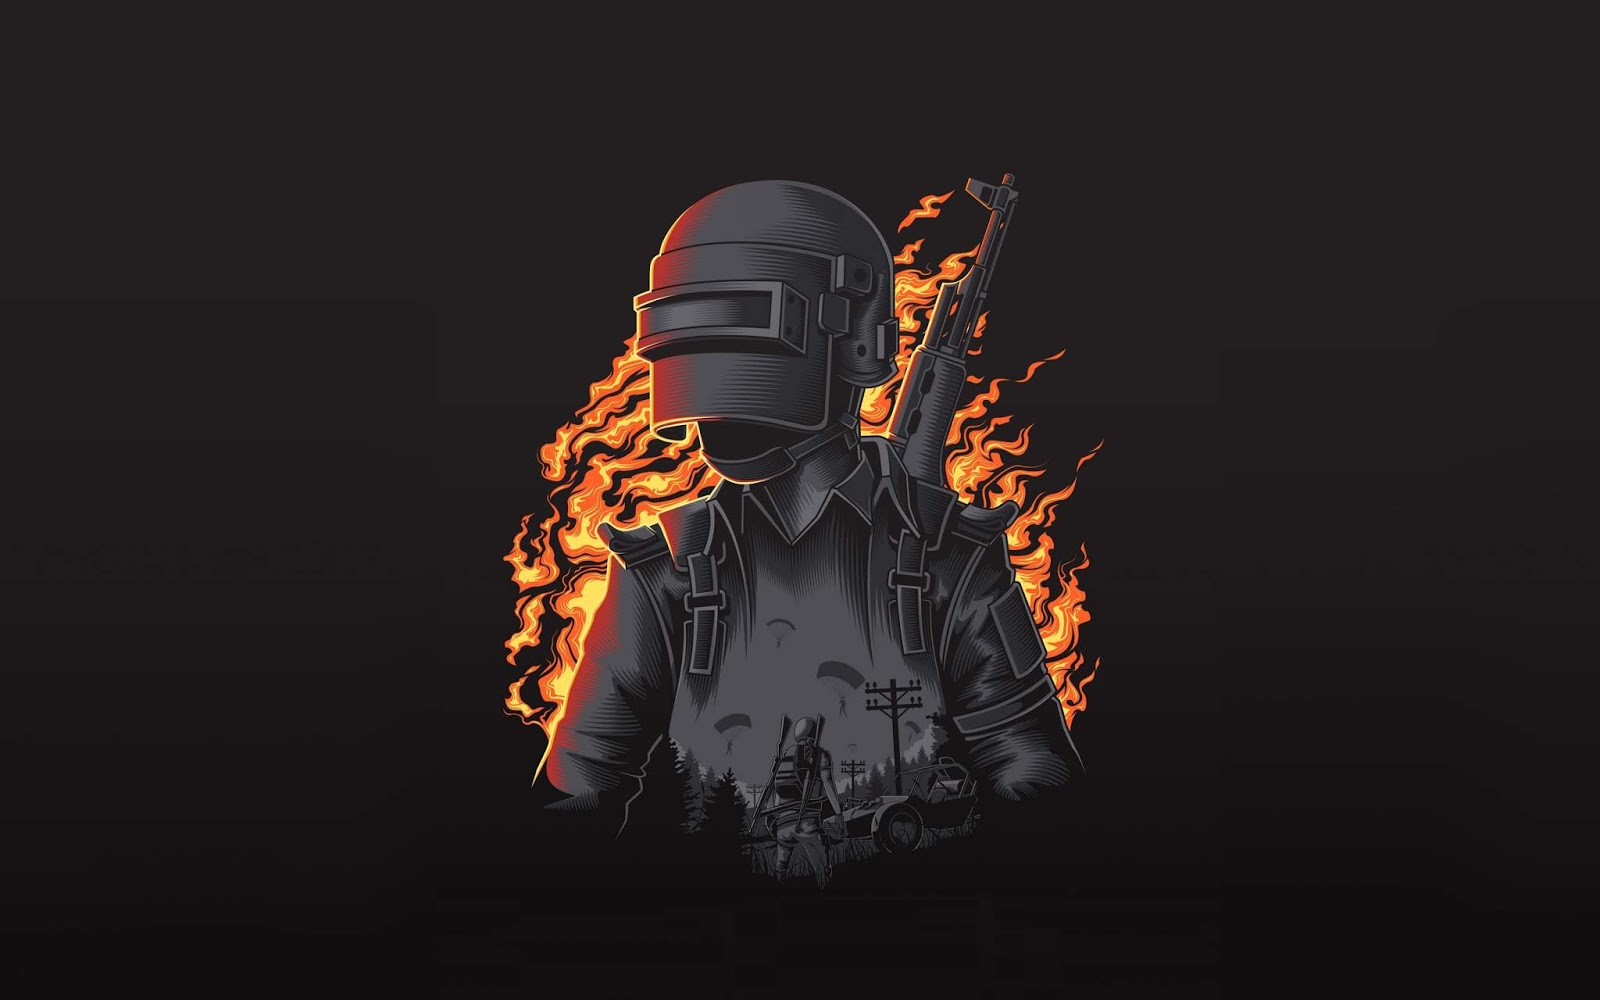 Wallpaper Pubg Mobile Hd Android: PUBG 4K ULTRA HD WALLPAPERS FOR PC AND MOBILE